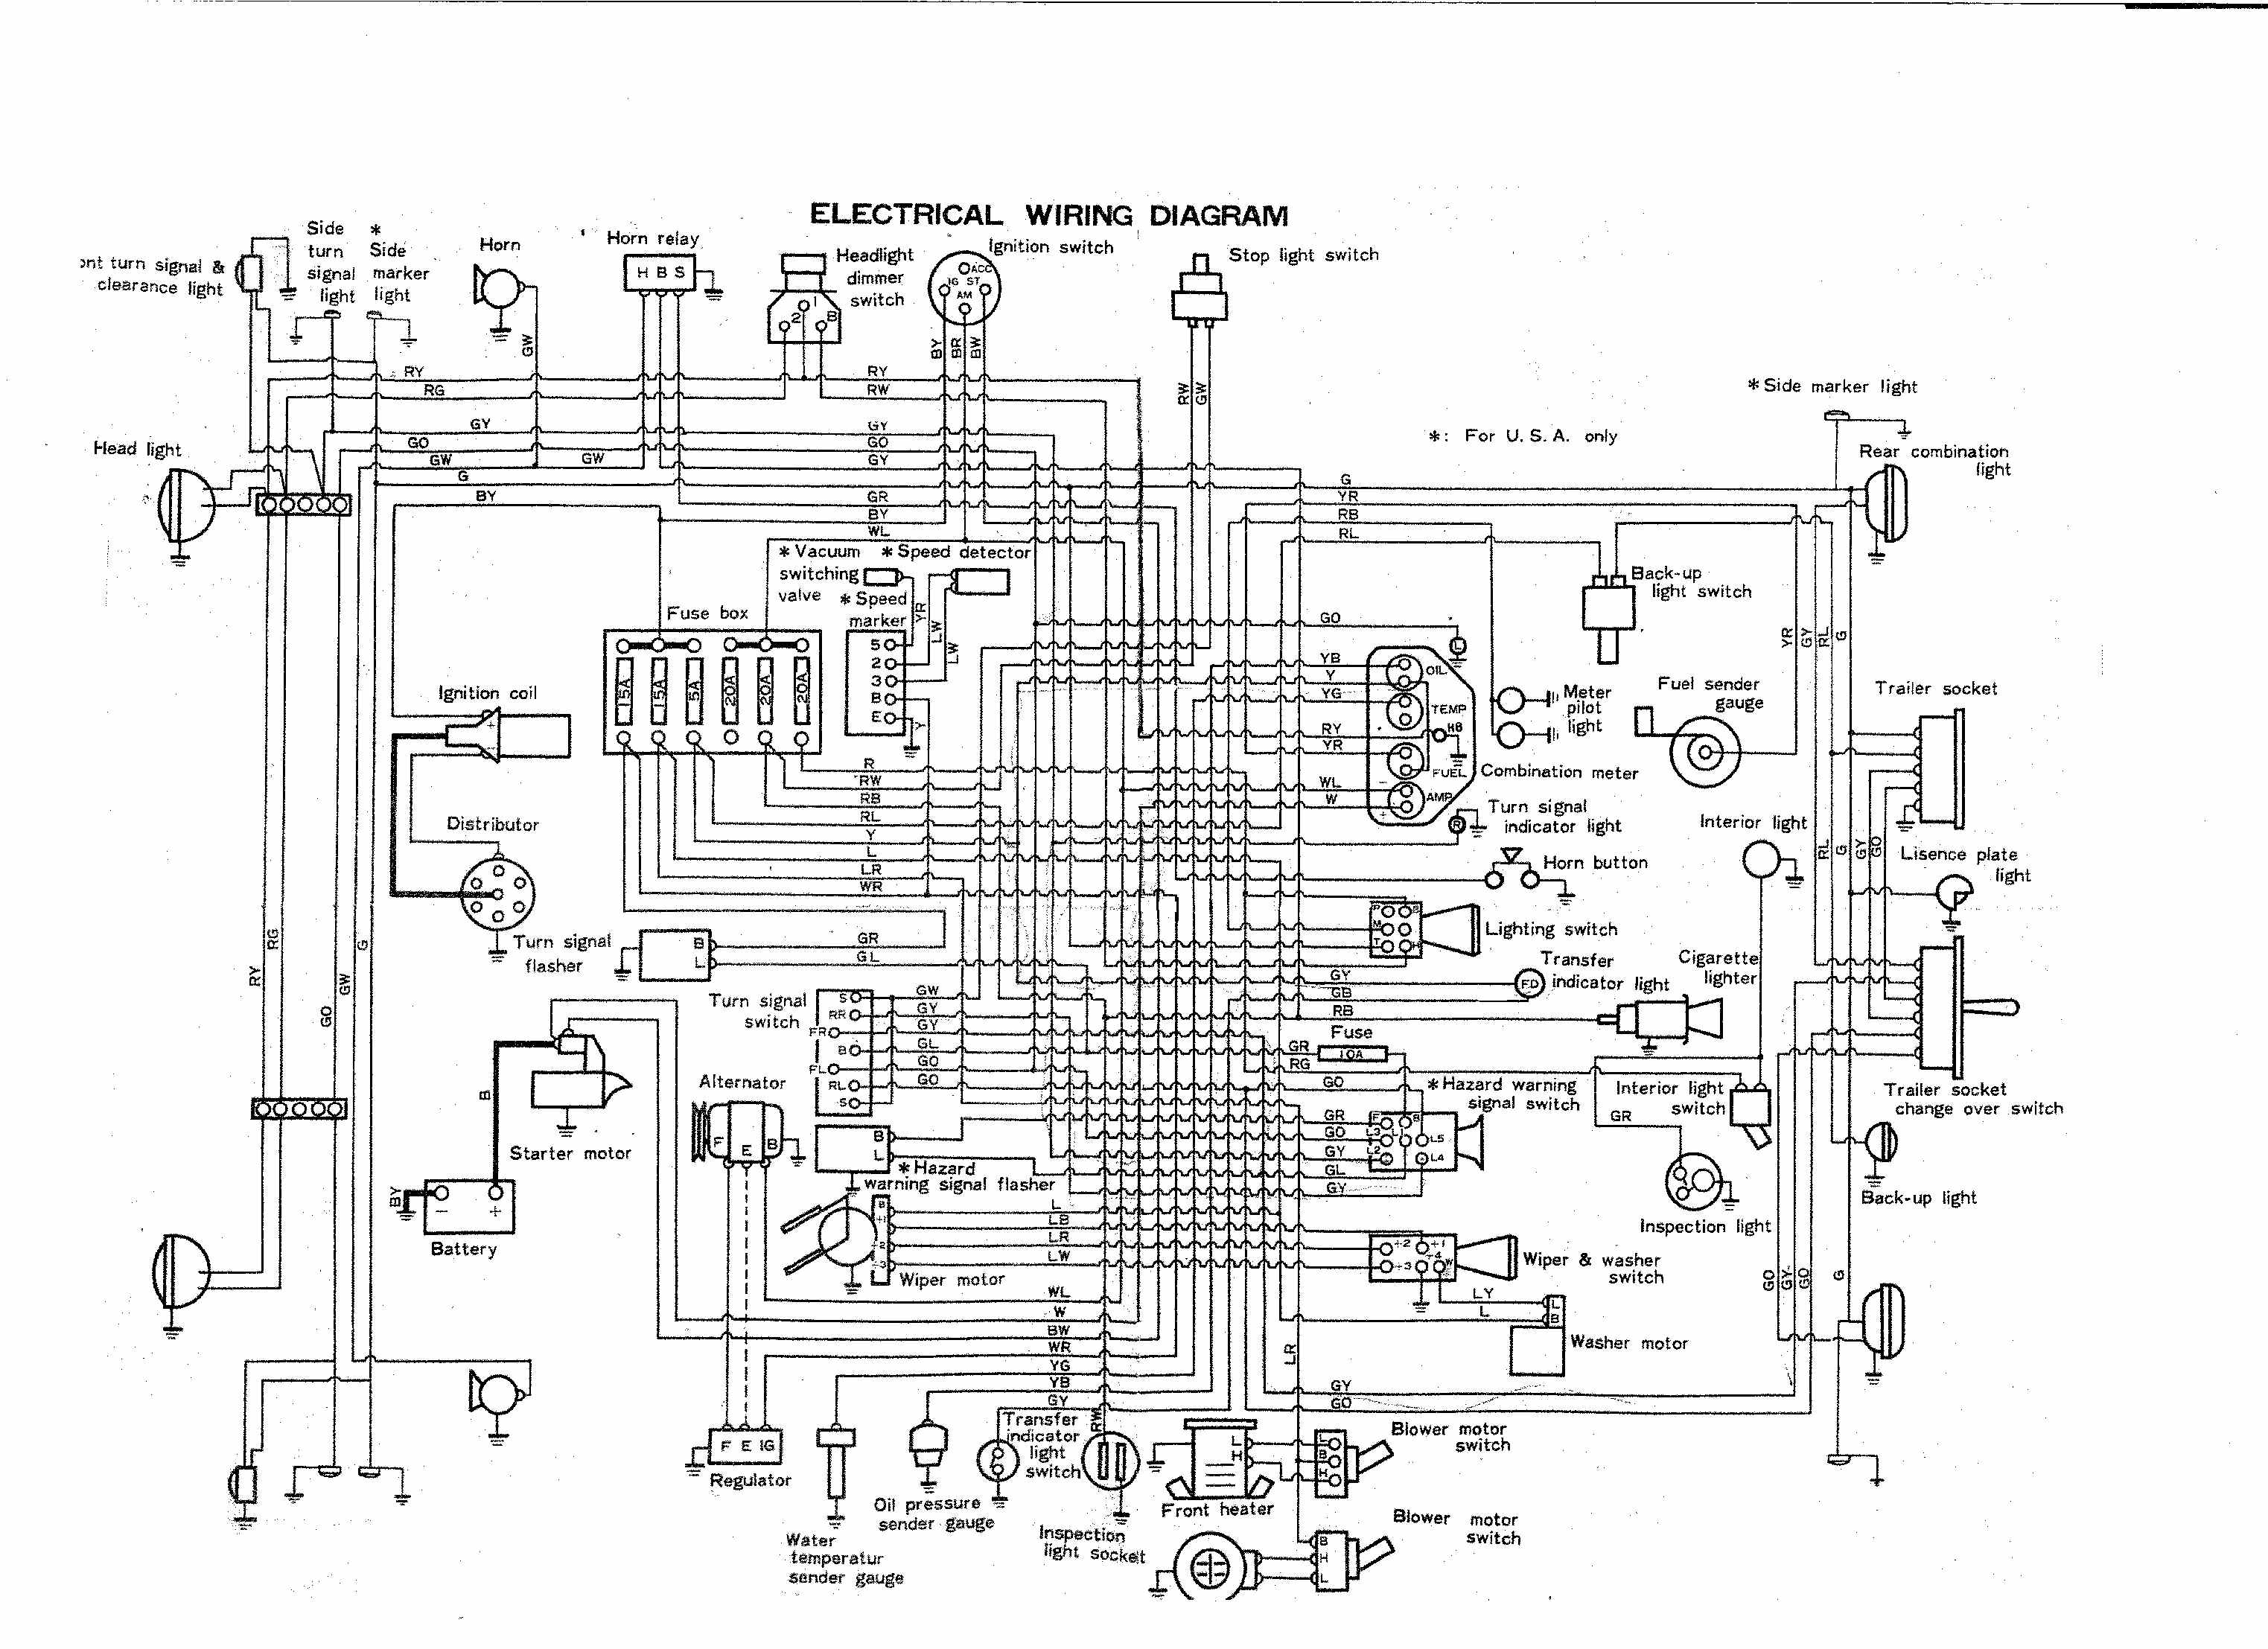 coolerman s electrical schematic and fsm file retrieval rh globalsoftware inc com fj60 wiring diagram 1978 fj40 wiring diagram